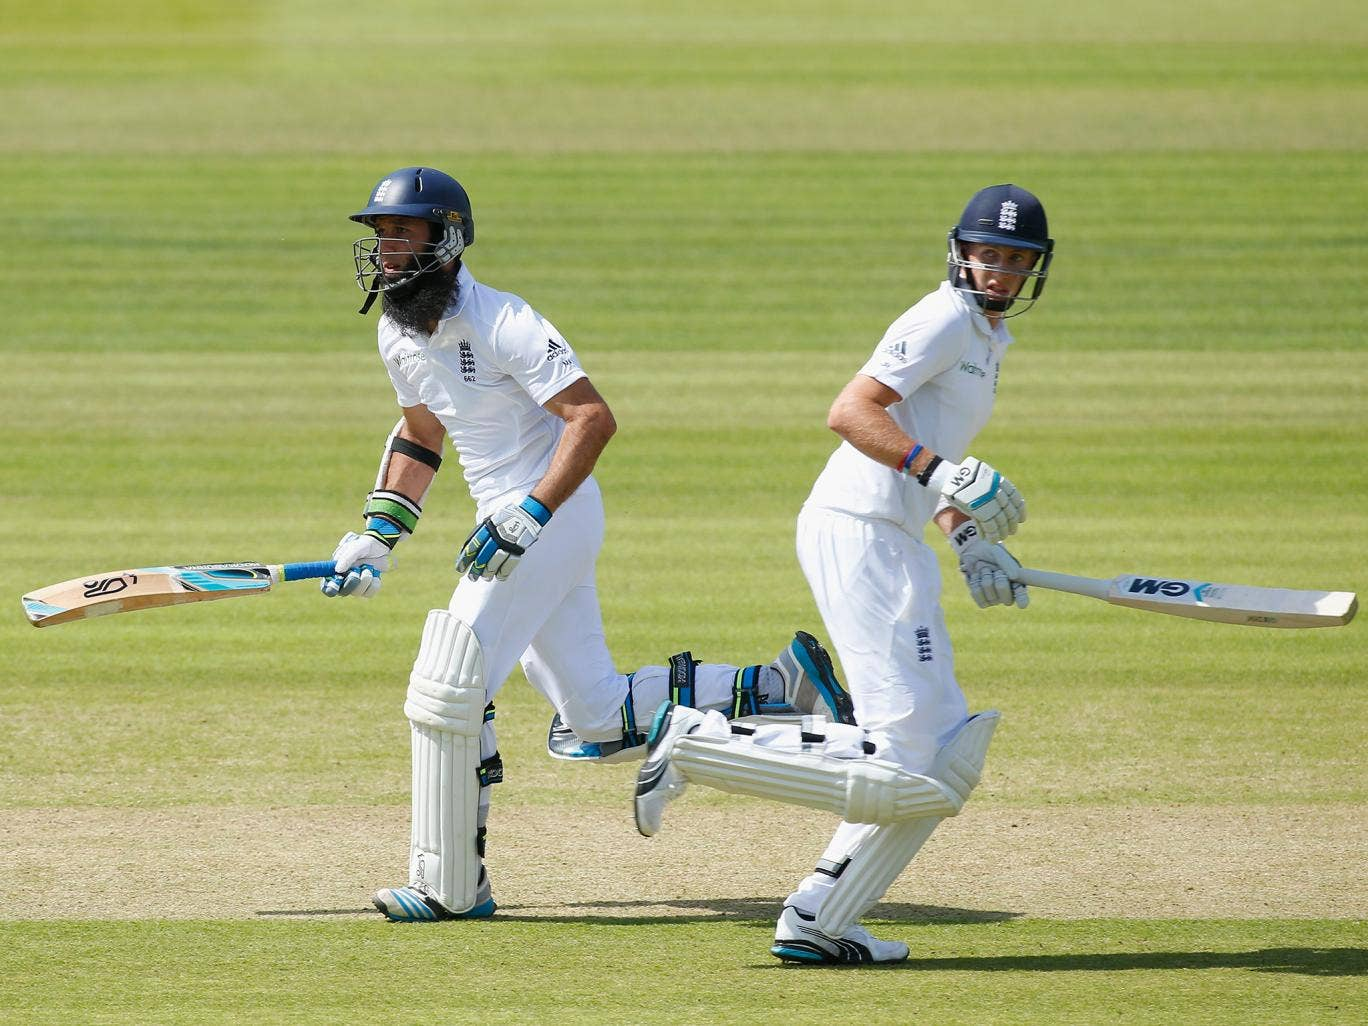 Moeen Ali (L) and Joe Root of England run between the wickets during day one of the 1st Investec Test match between England and Sri Lanka at Lord's